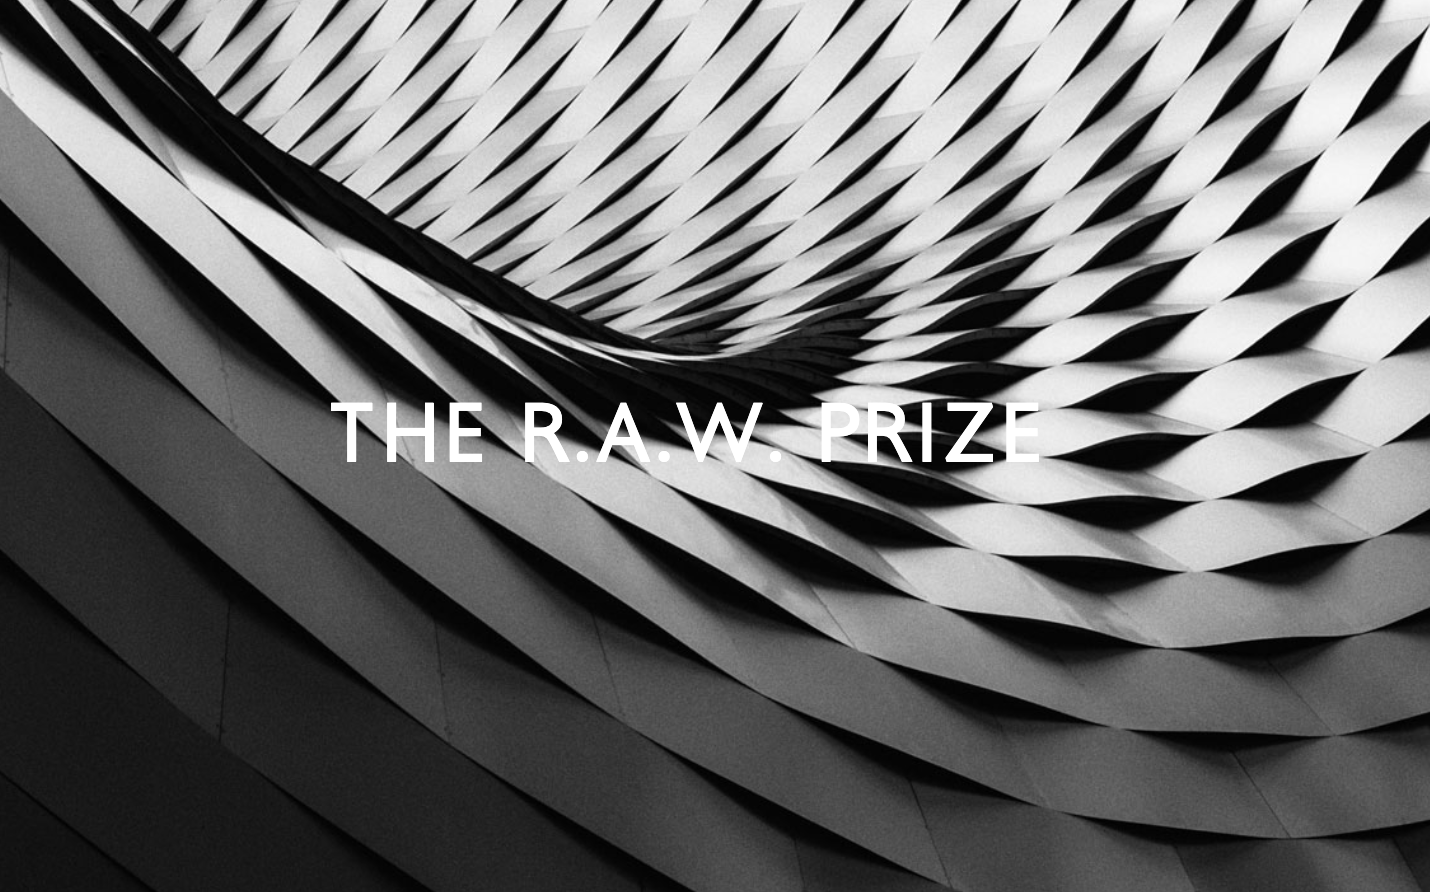 Do You Want To Win A HK$500,000 Grant? Apply Now For The R.A.W. Prize